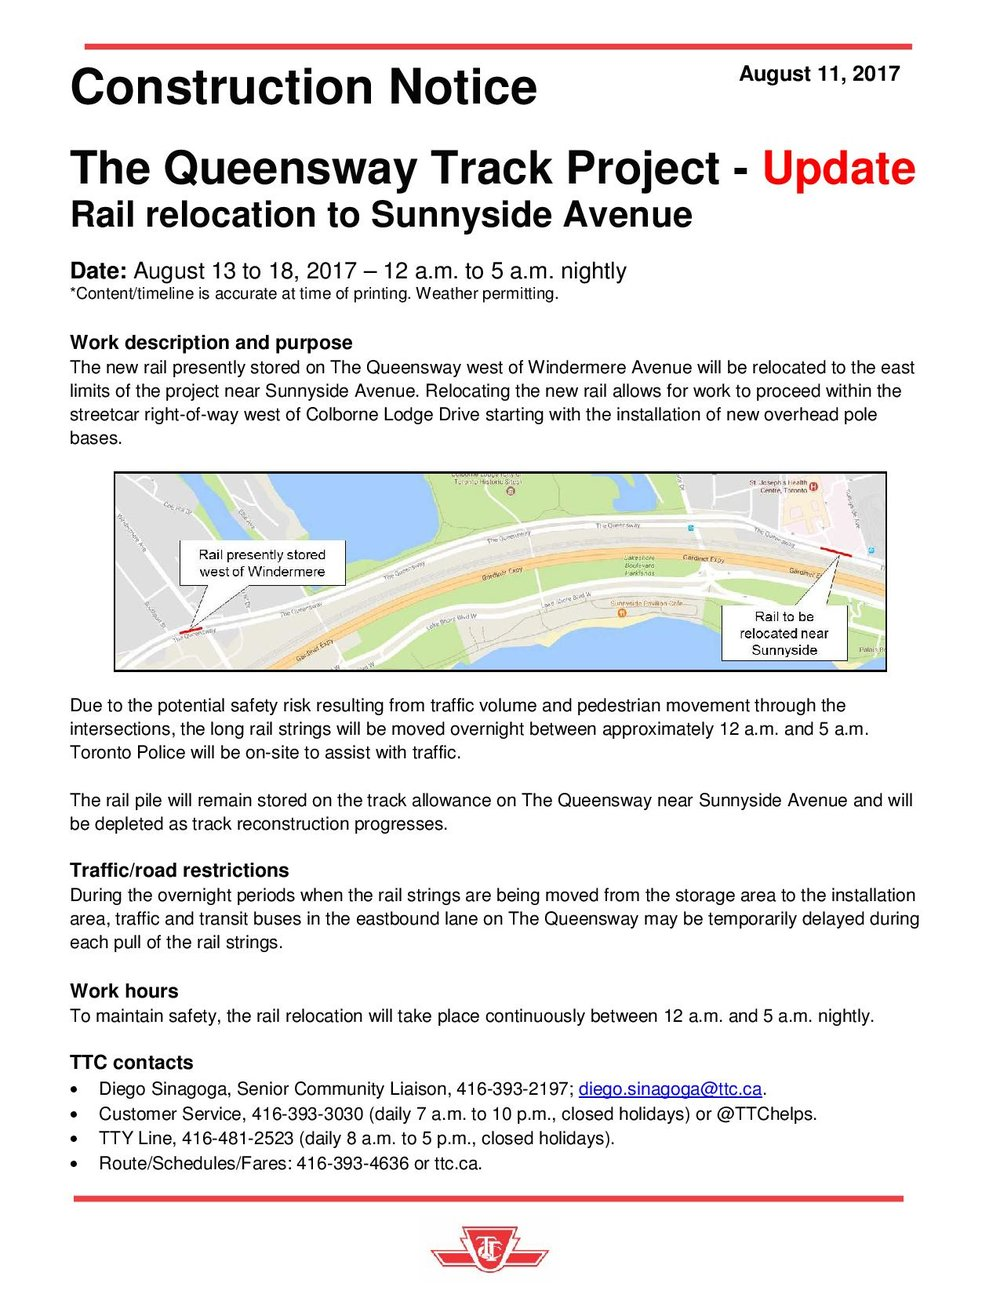 TTC Notice - Queensway Rail Relocation - August 2017-page-001.jpg